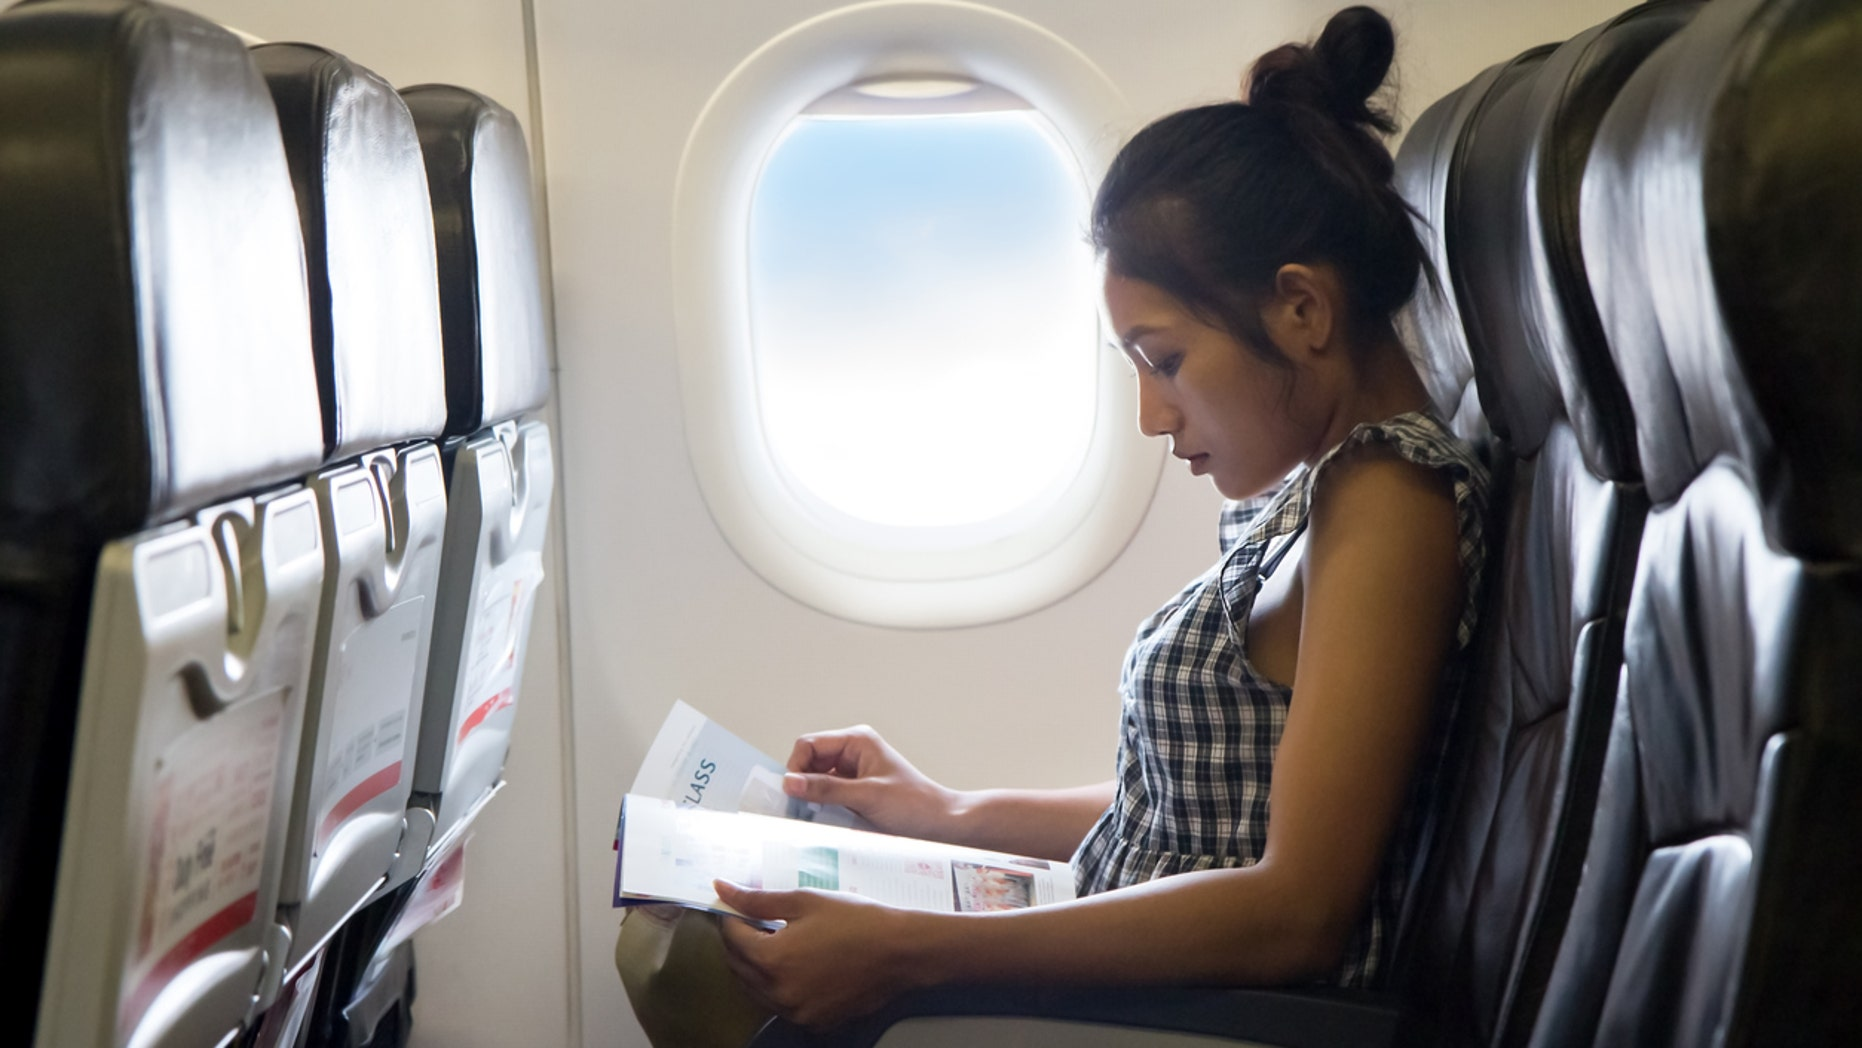 United Airlines has switched its inflight magazine and seatback service guide to lighter paper, reducing the weight by one ounce on each magazine.